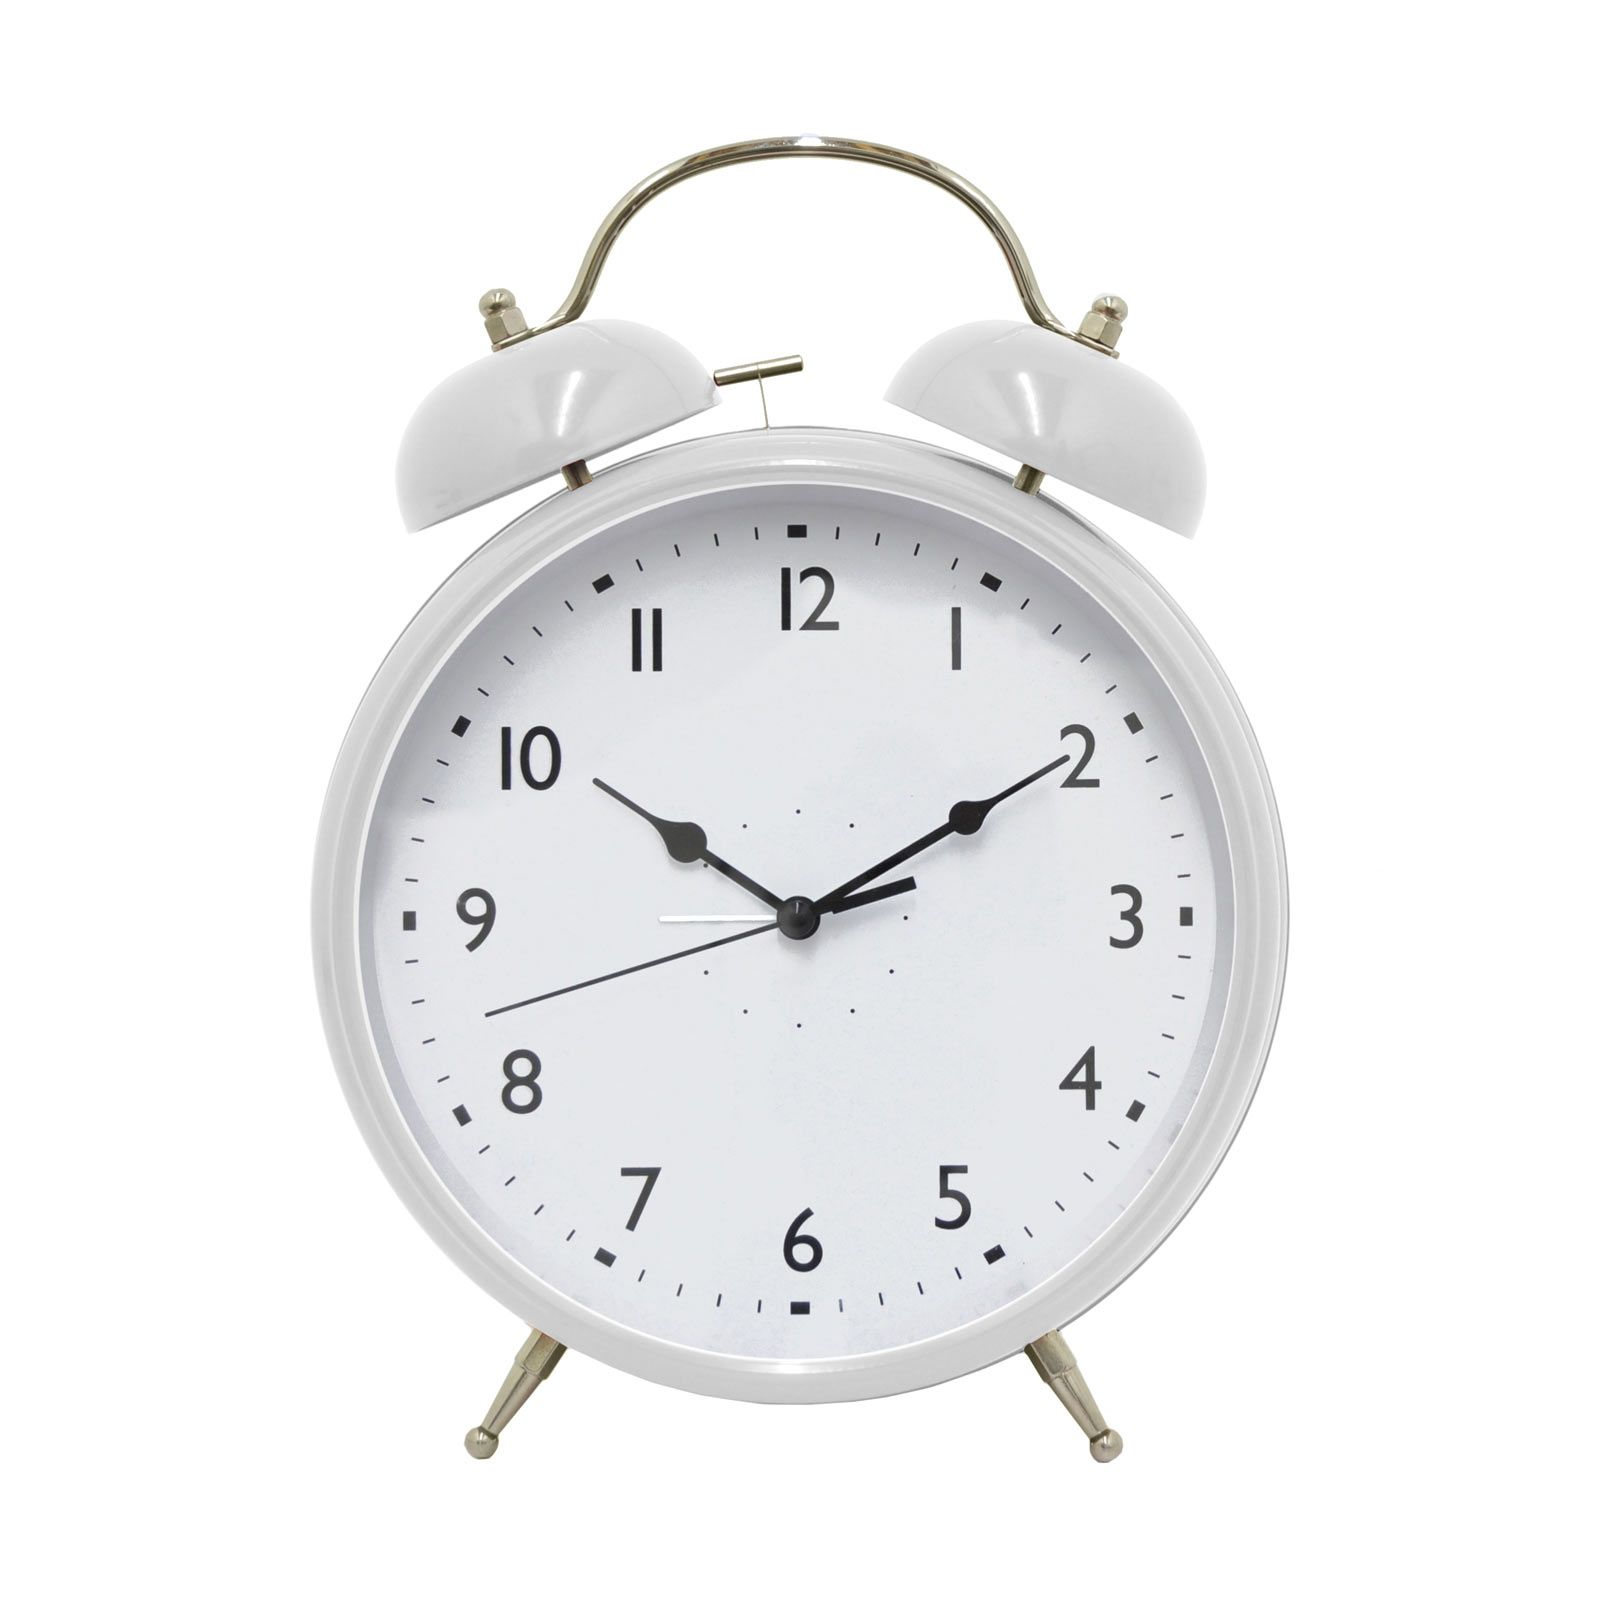 Old Style White Alarm Clock Objetos